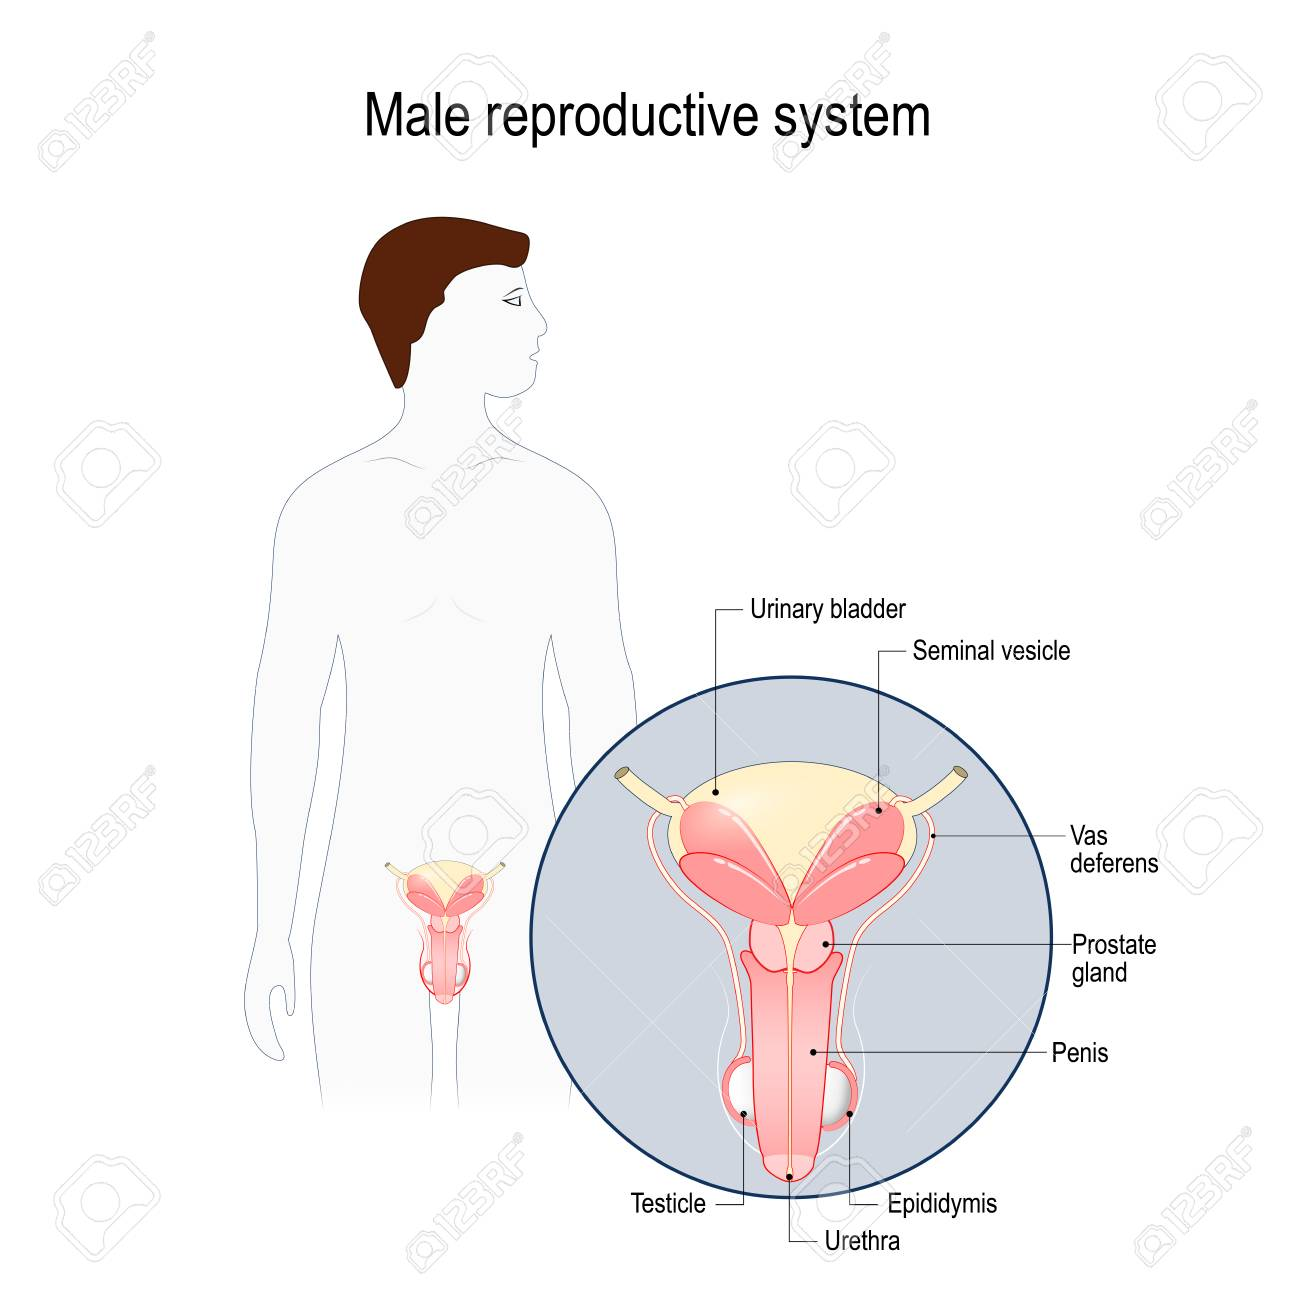 Male Reproductive System Seminal Vesicle Vas Deferens Prostate